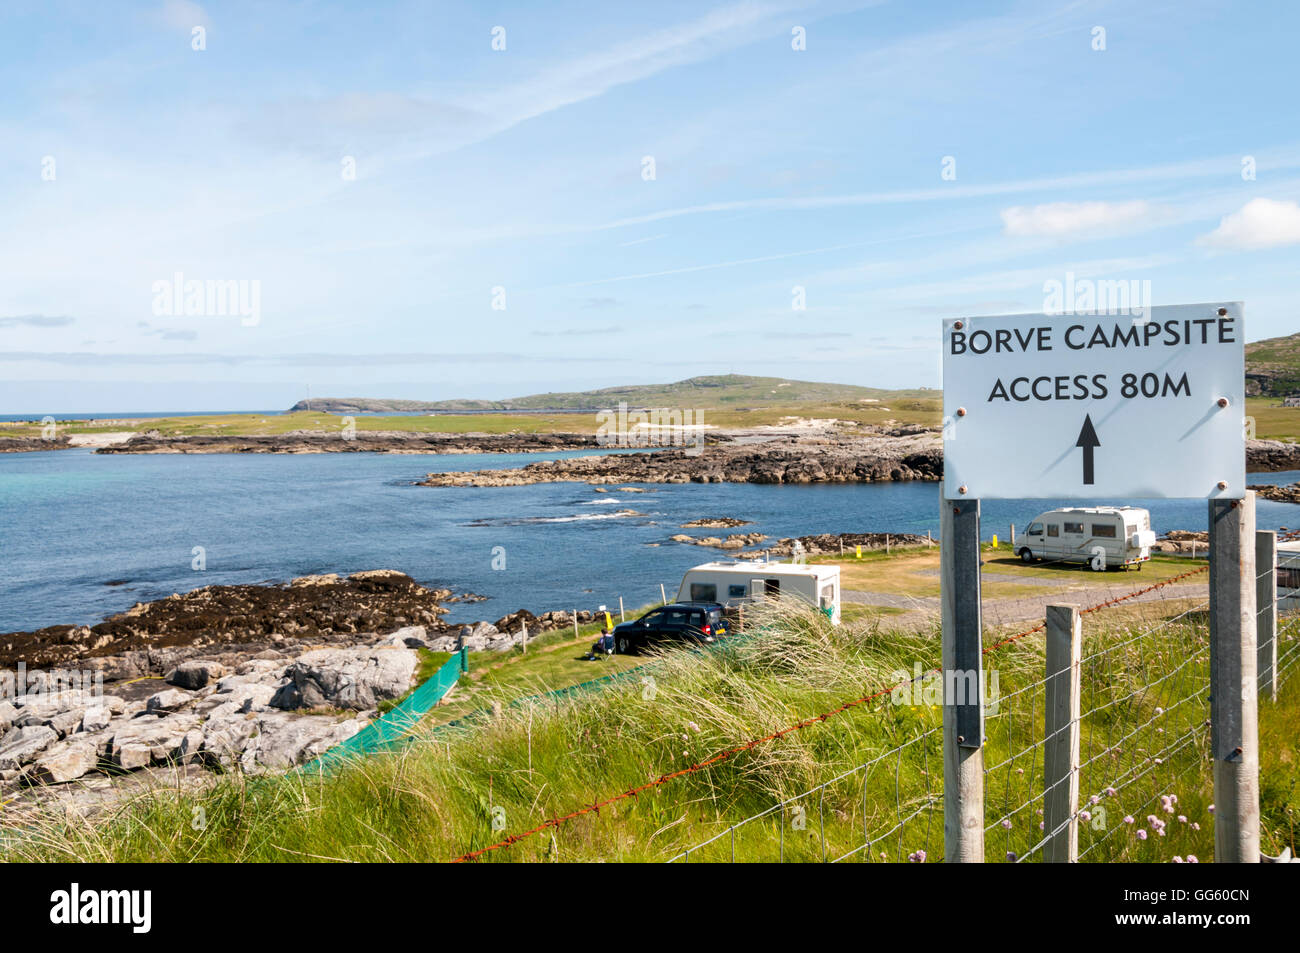 Borve Campsite on the island of Barra in the Outer Hebrides, Scotland. - Stock Image